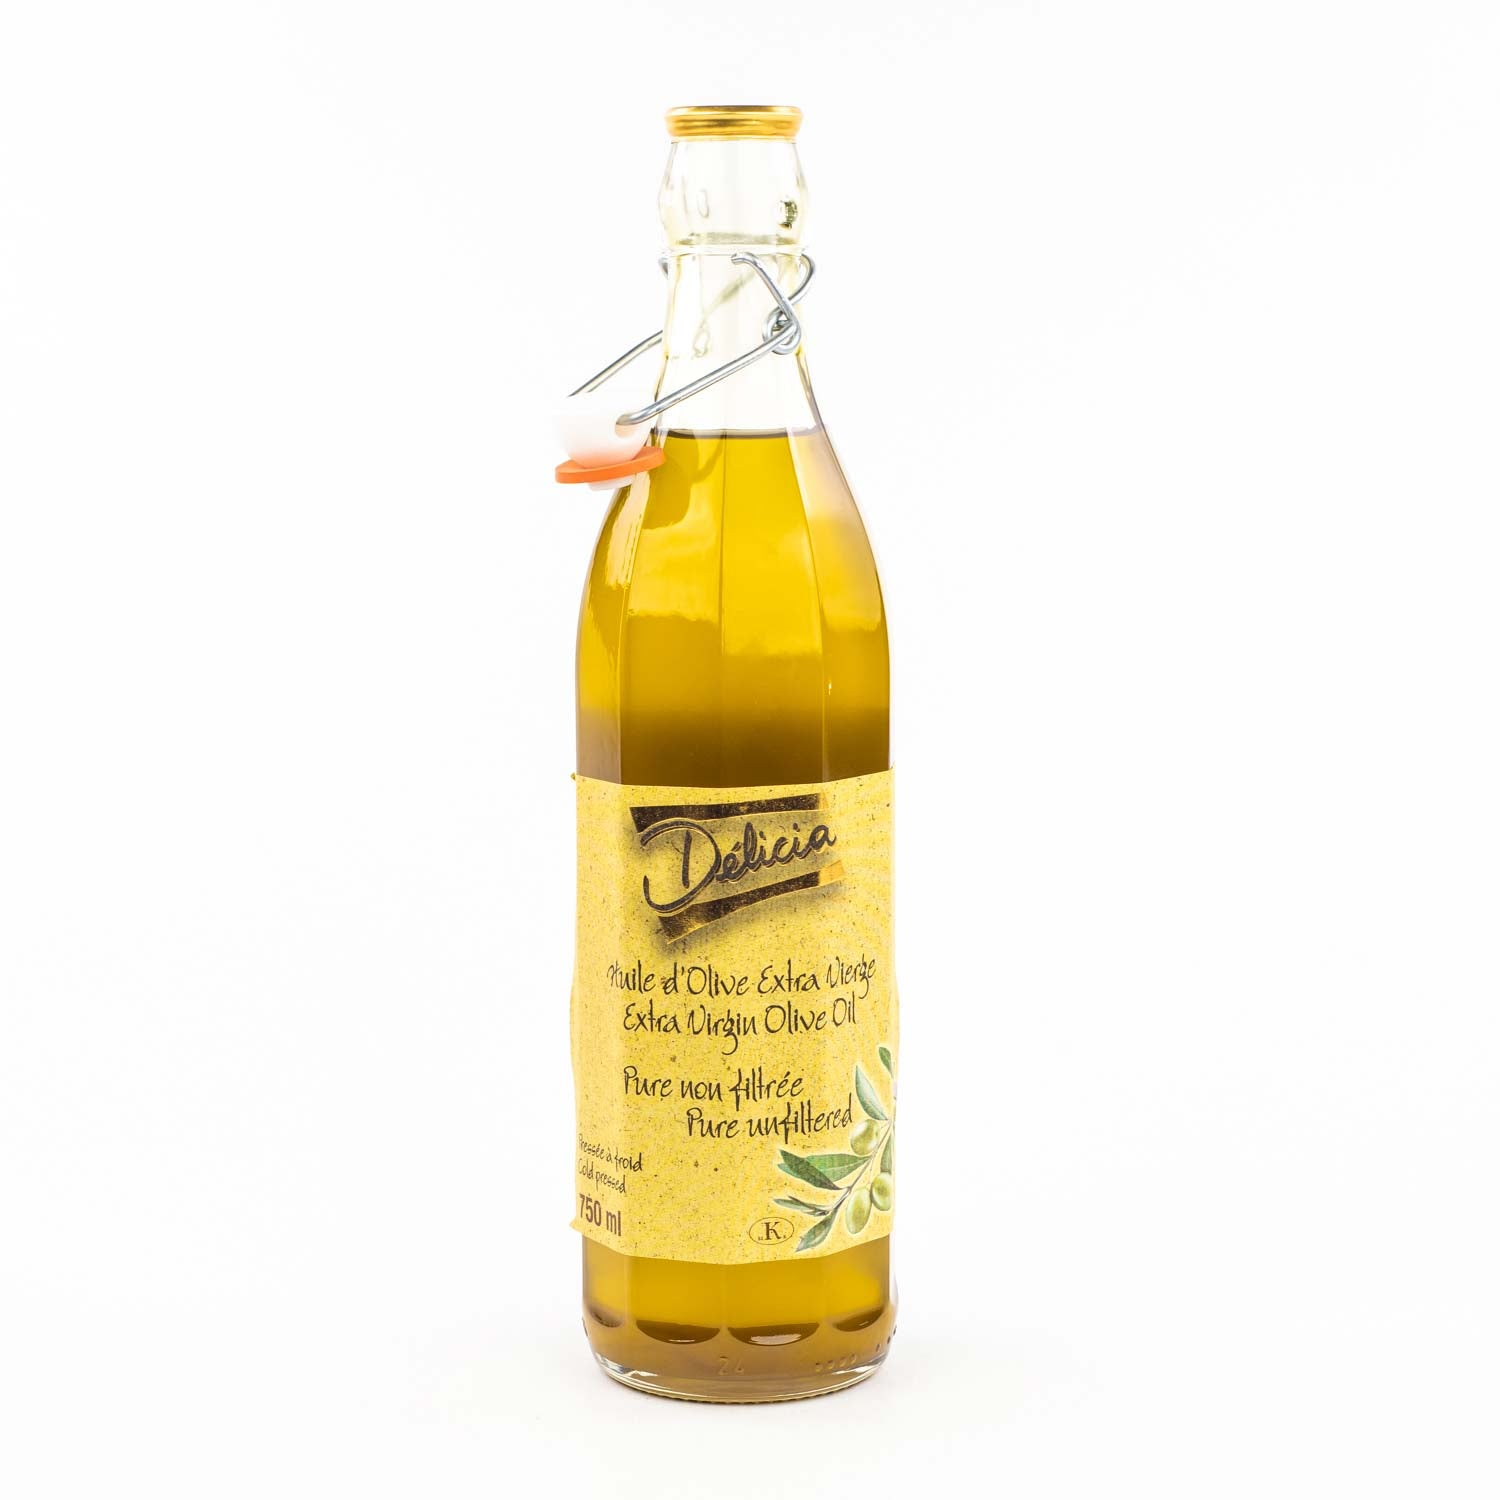 Delicia - Extra Virgin Olive Oil 750ml